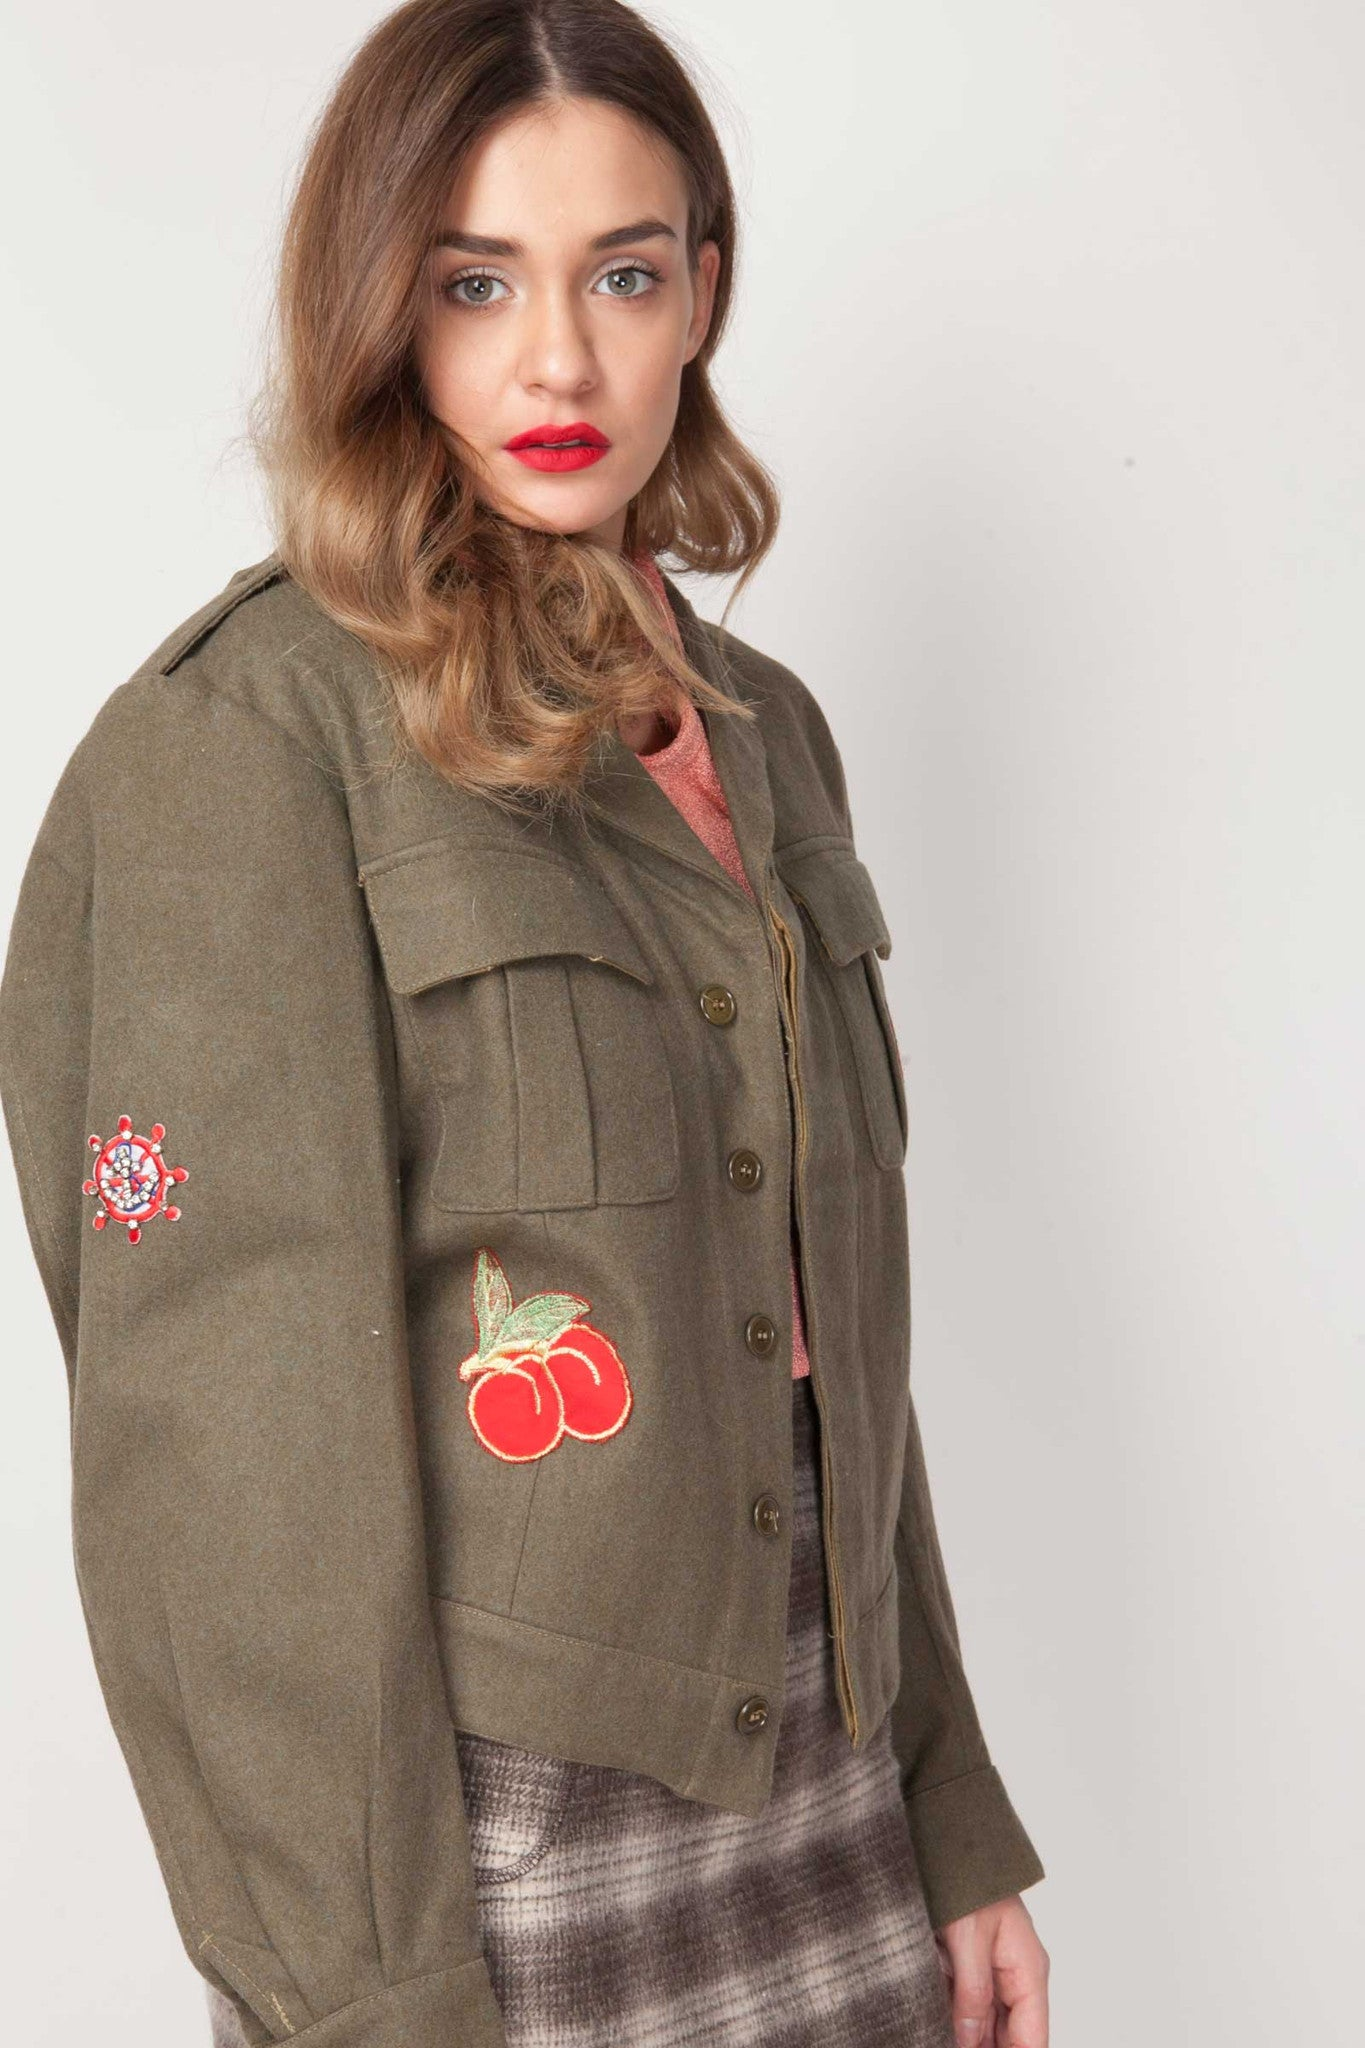 Rahele military jacket